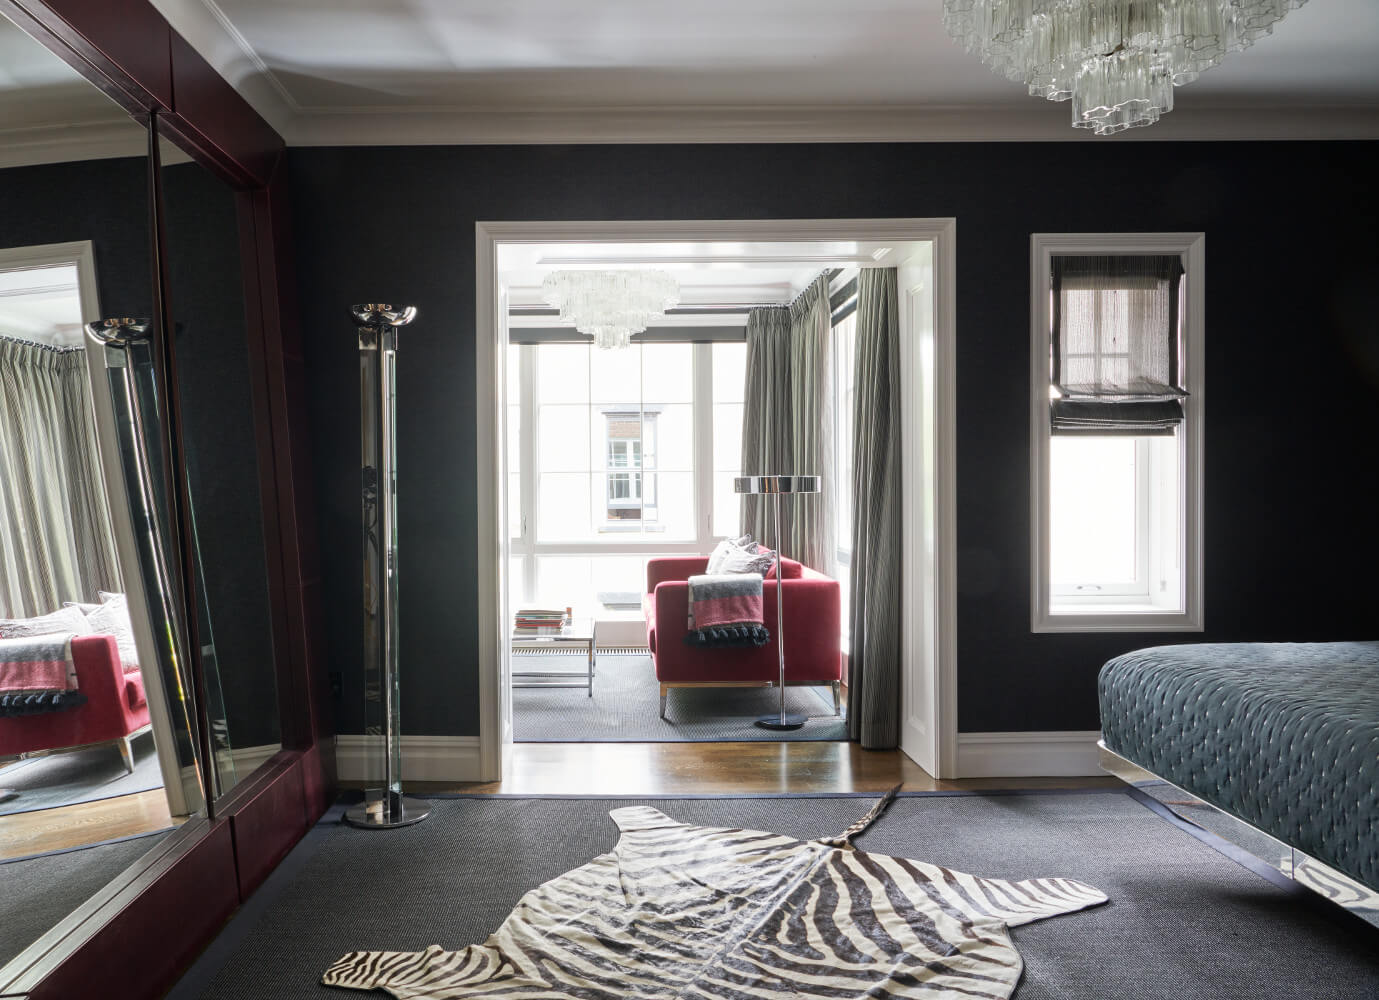 The black-painted master bedroom of this Prospect Park West twin house has its own sunny lounge space.